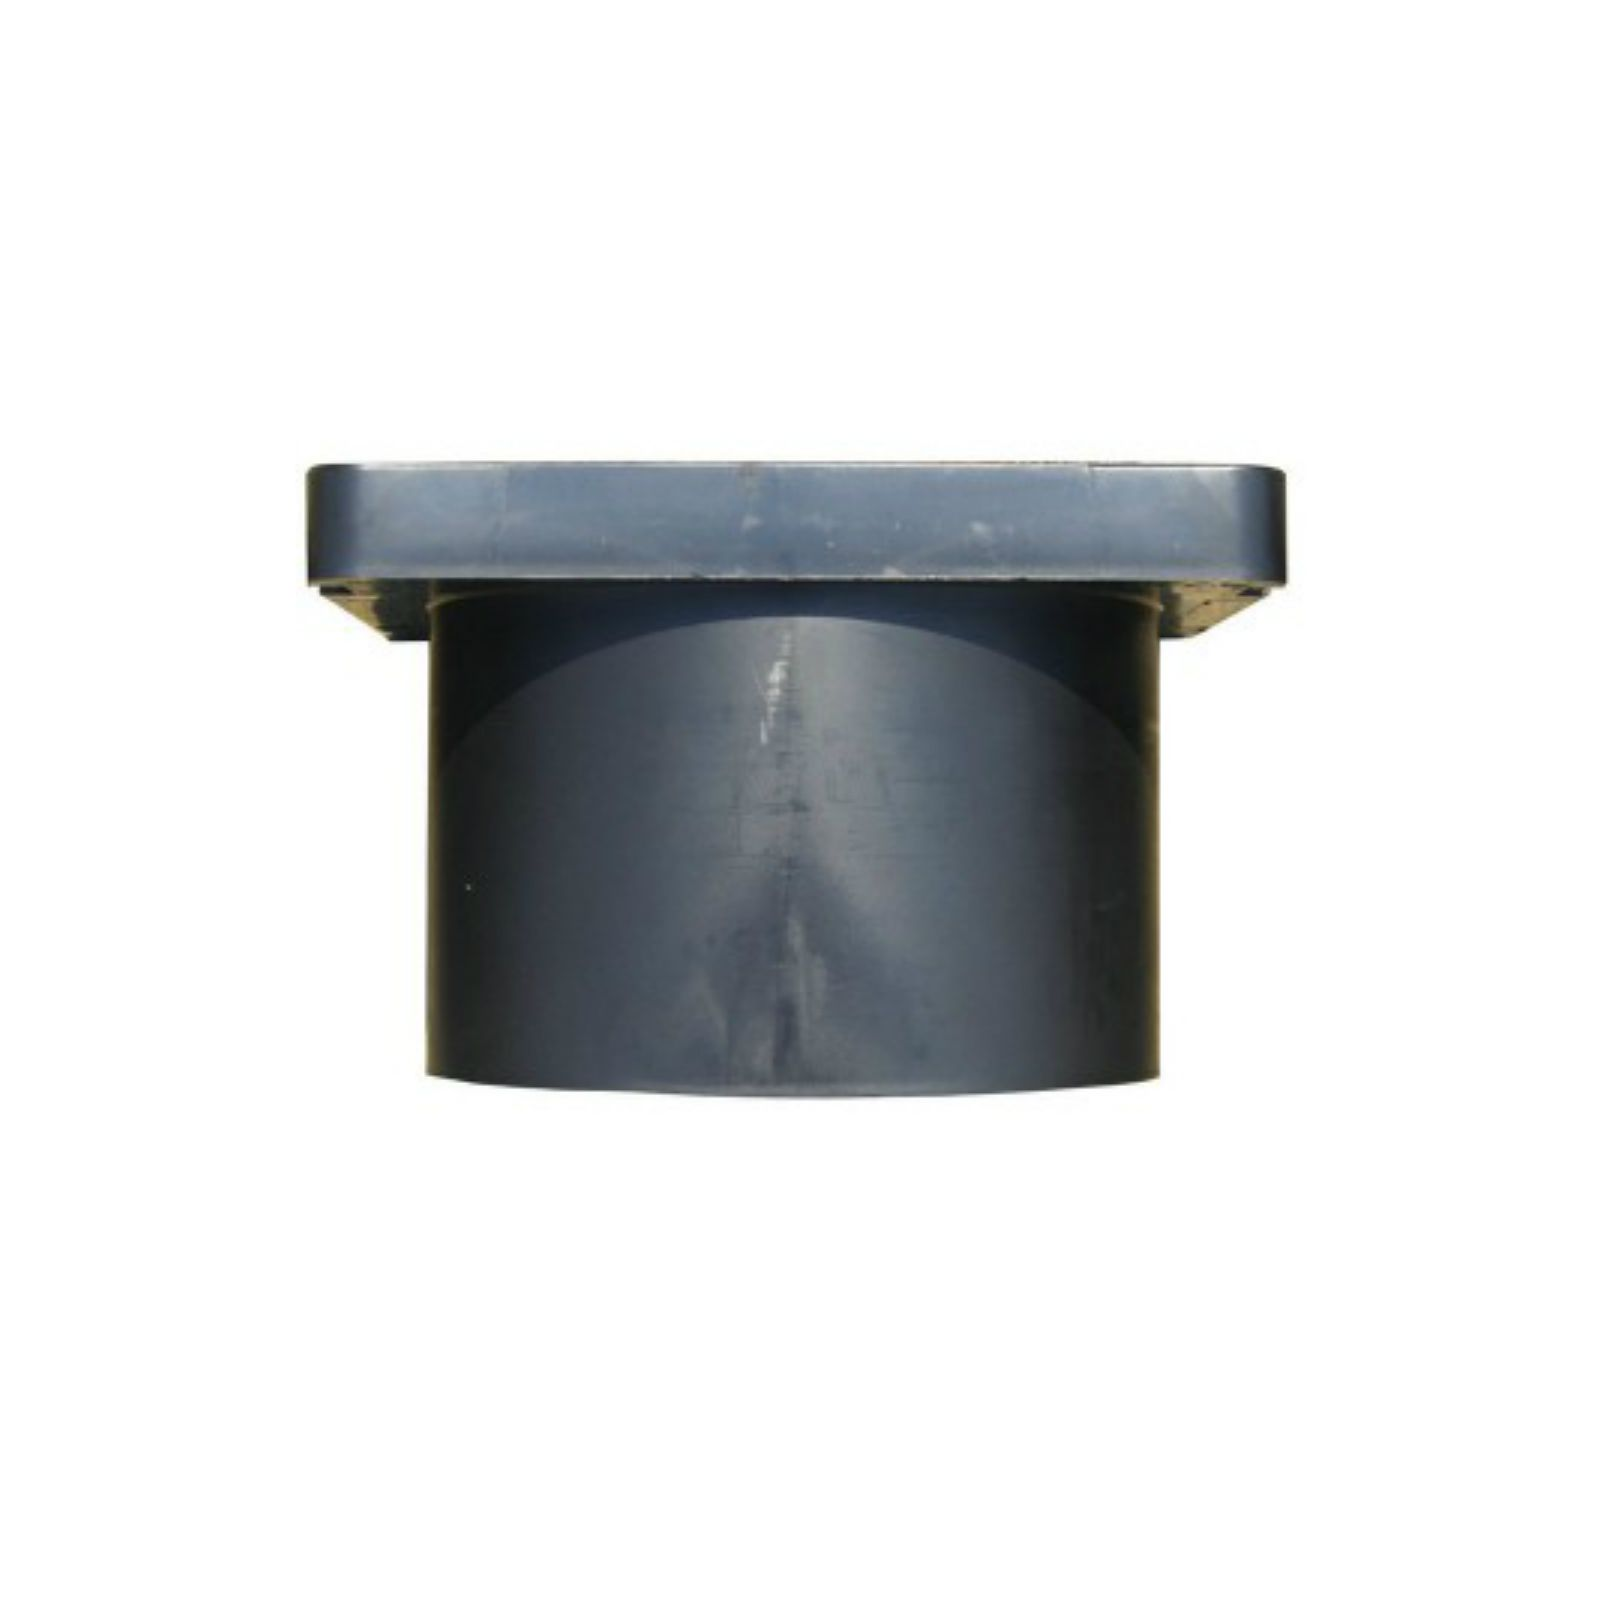 Builder's Best 111790 - Plastic Roof Cap Adapter 7""